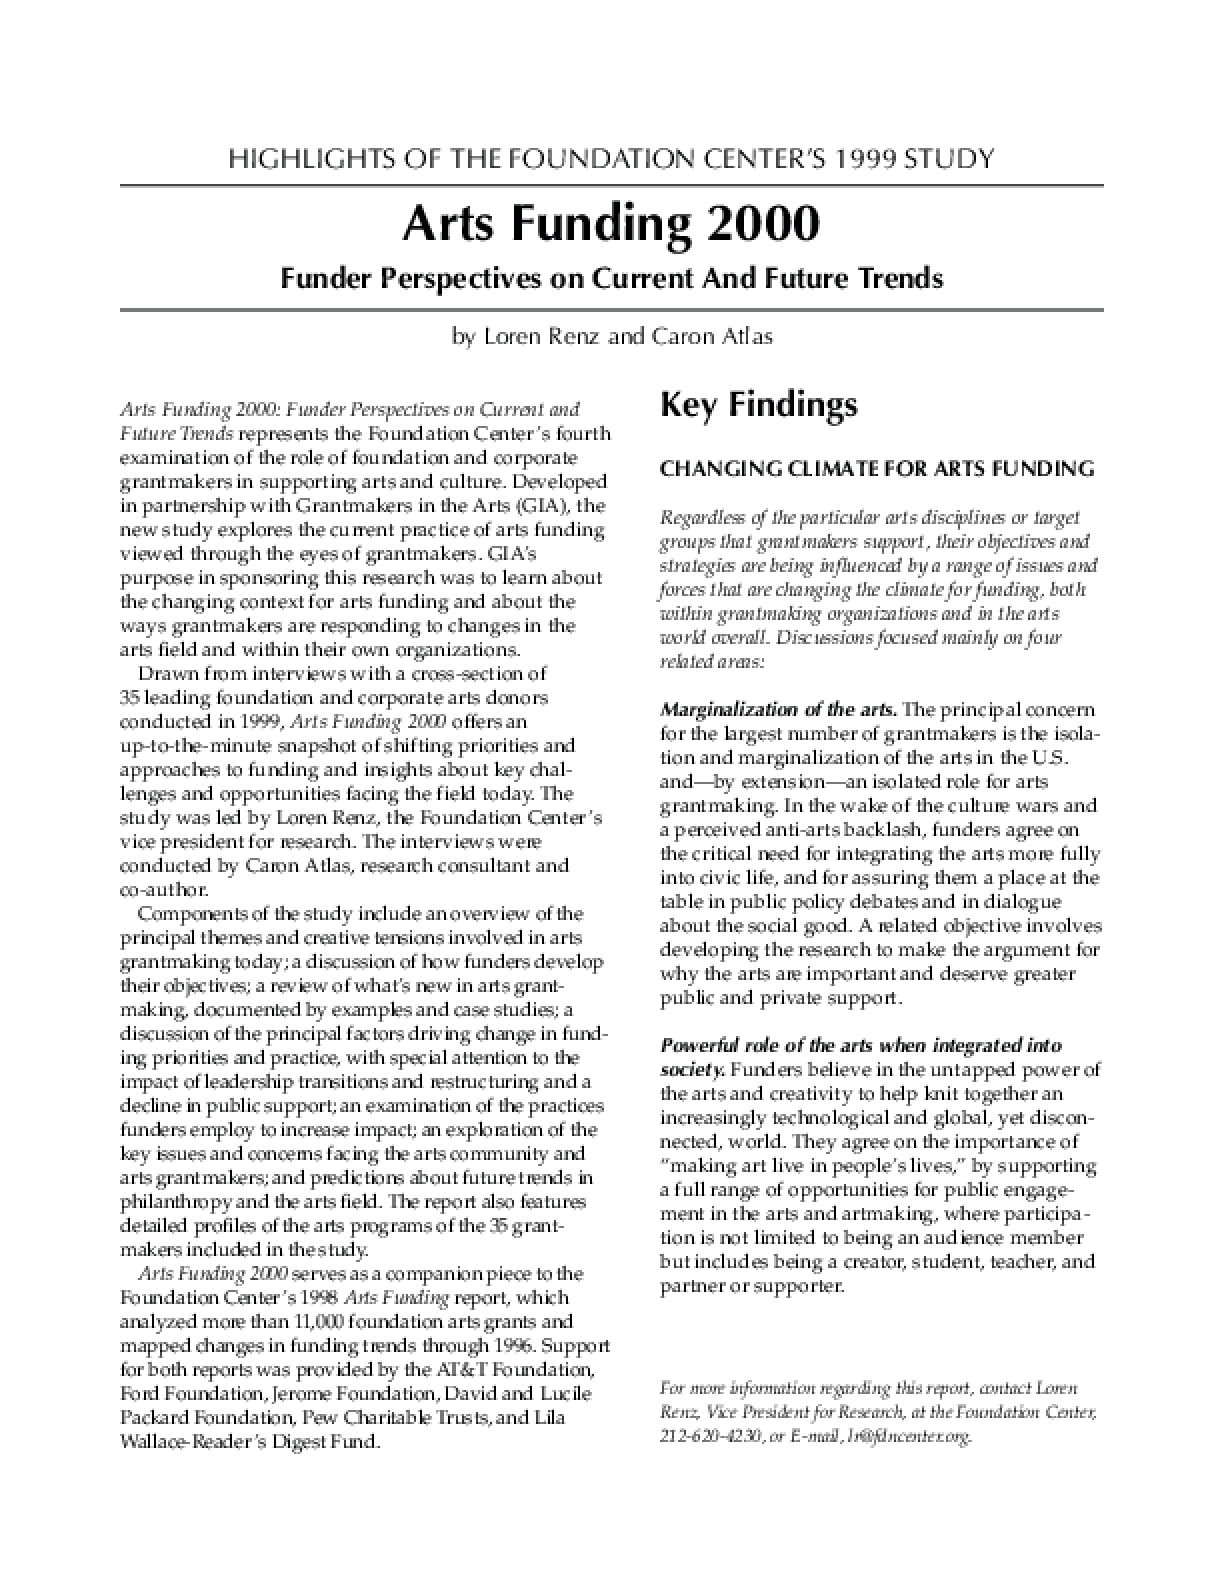 Highlights of the Foundation Center's 1999 Study: Arts Funding 2000 - Funder Perspectives on Current And Future Trends